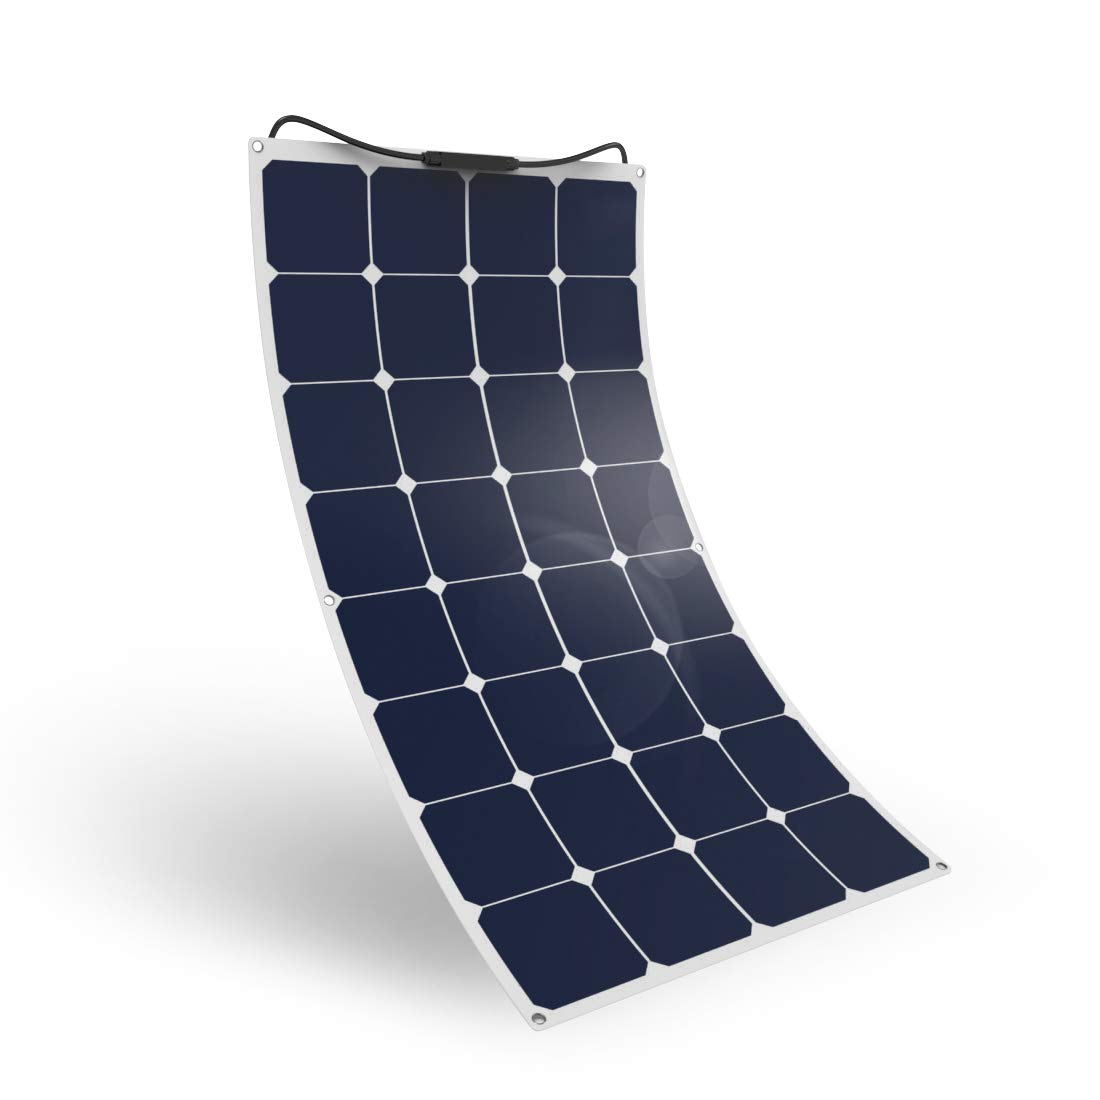 Bouge RV Solar Panel Charger - Portable option for Rooftop Solar System